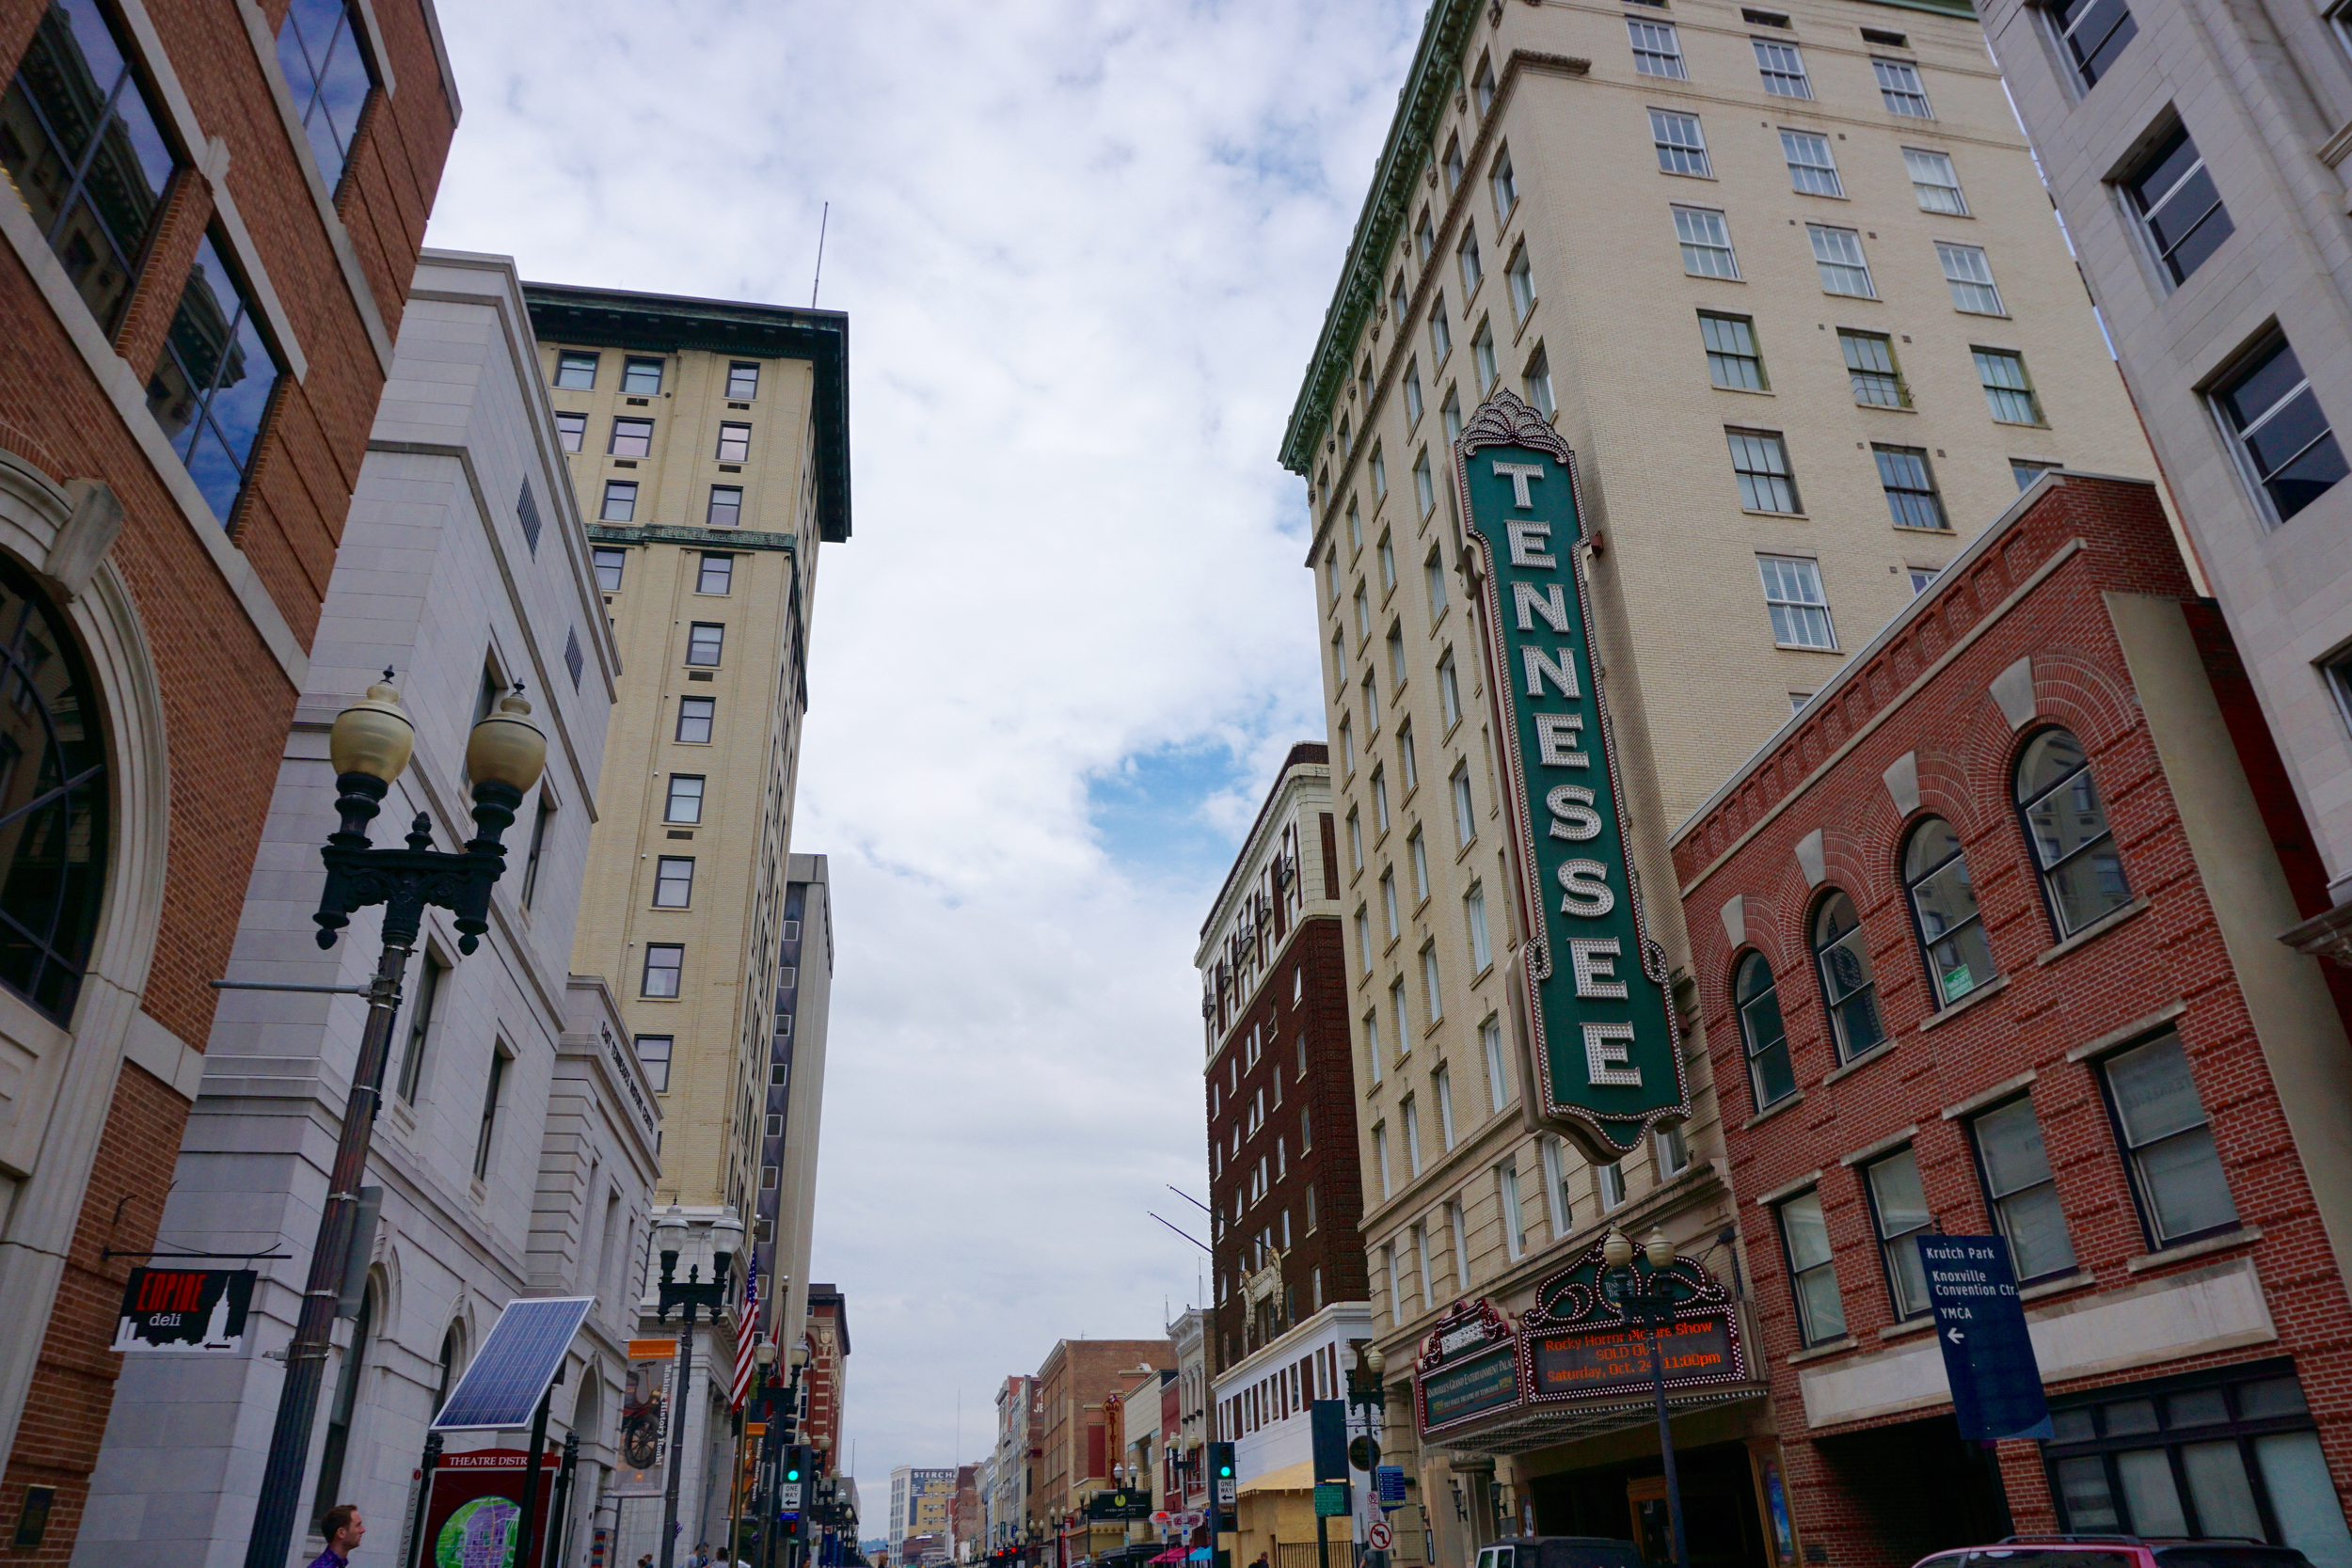 Tennessee Theatre, Knoxville, Tennessee